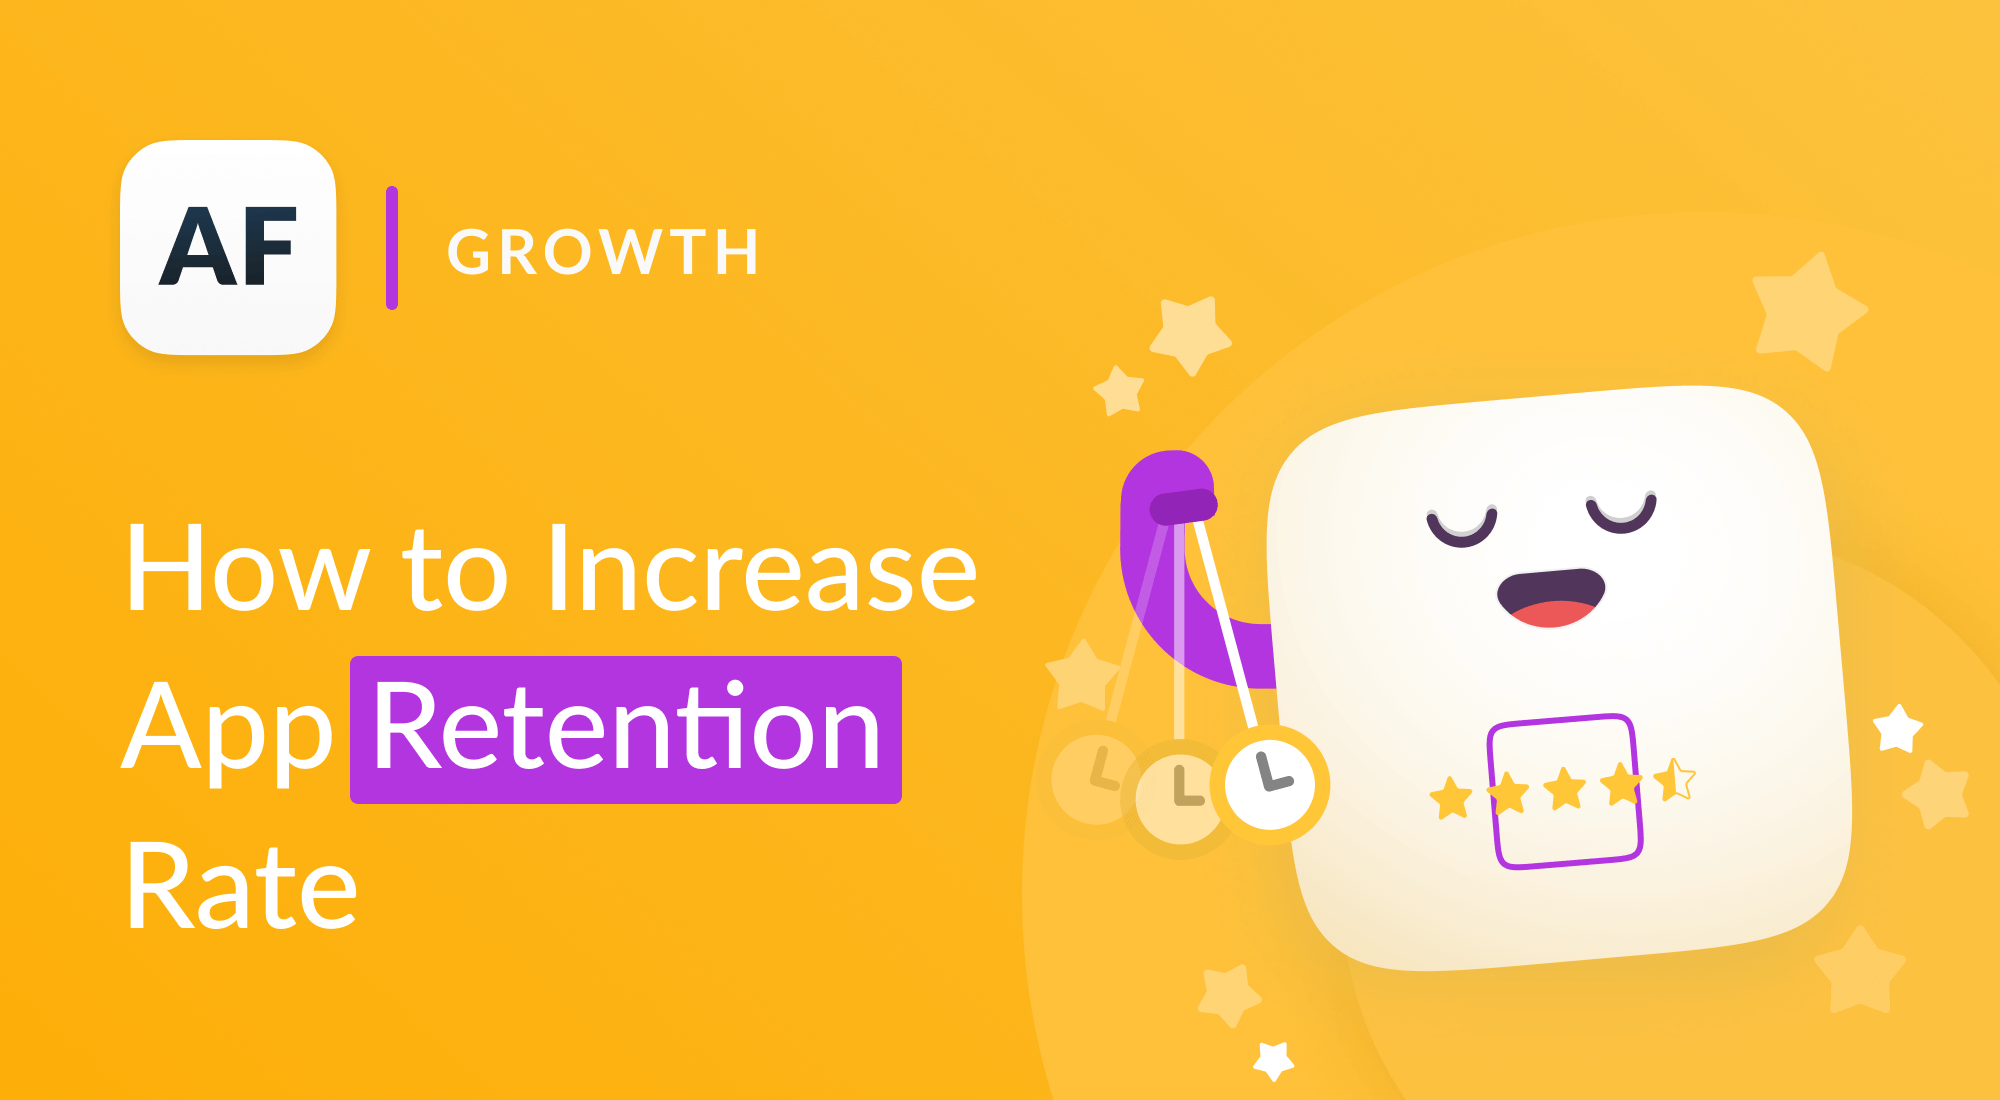 How to Increase Customer Retention within the App